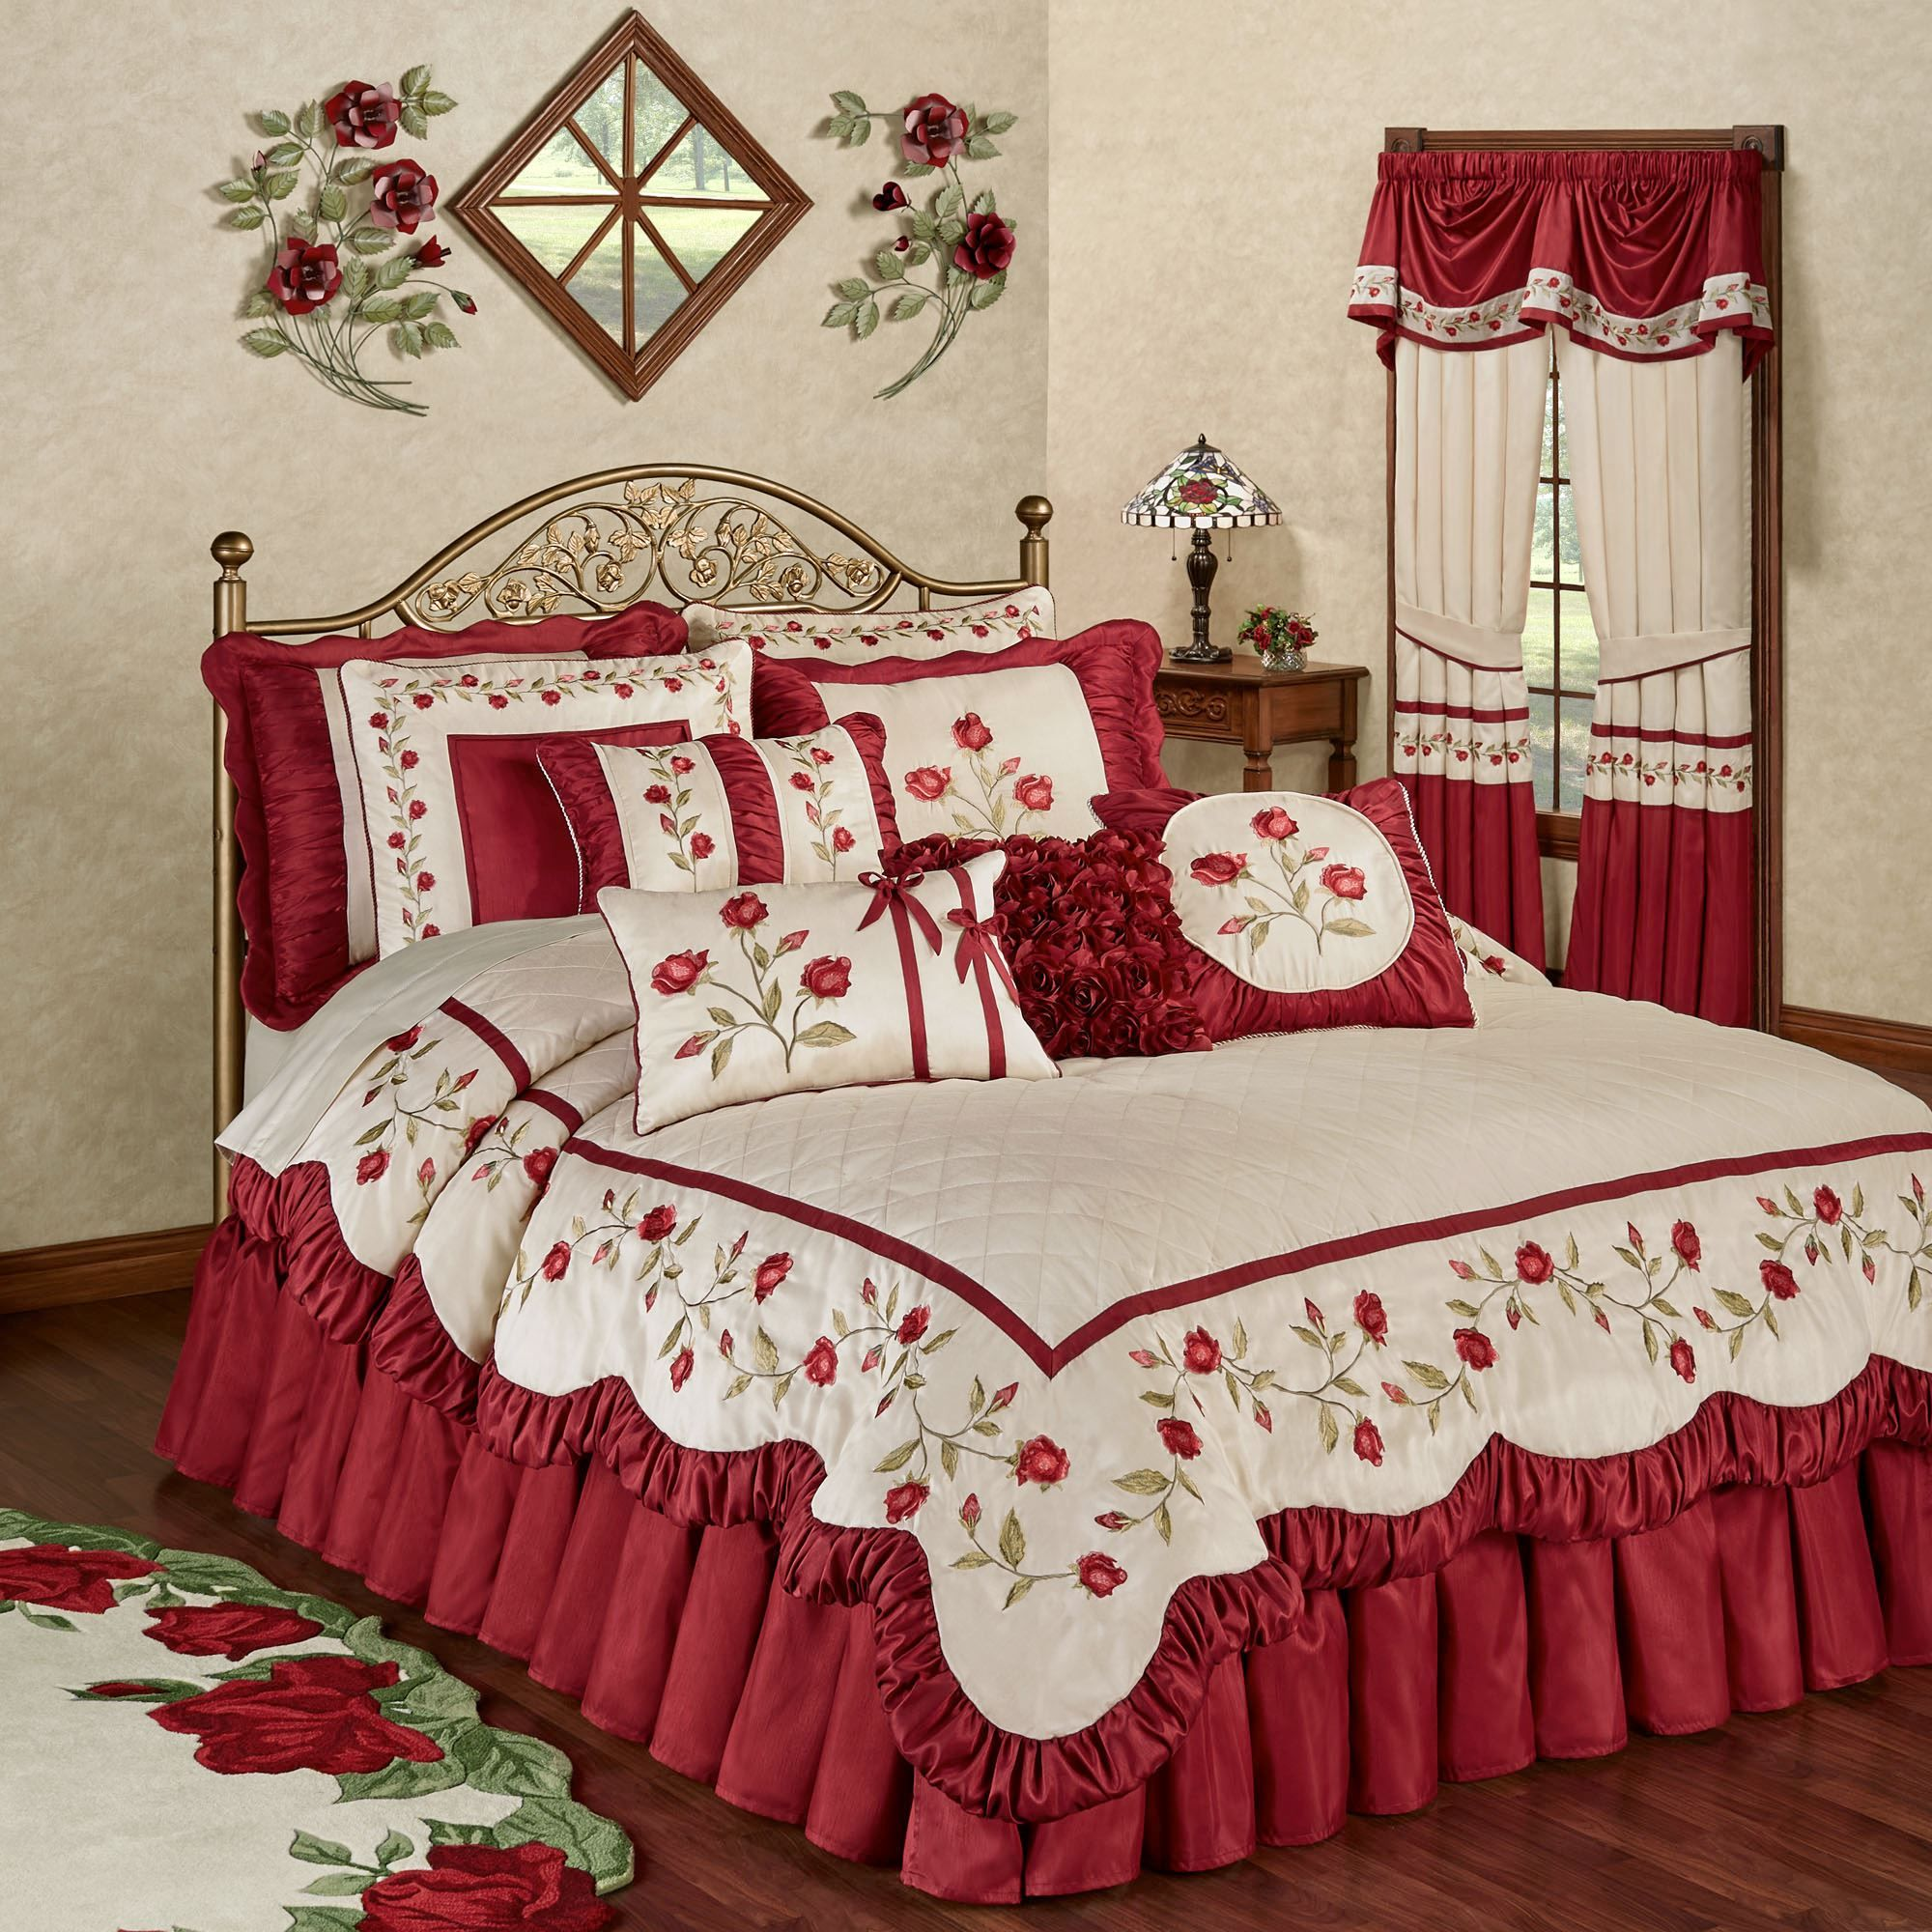 Briar Rose Dark Red Floral Romantic forter Bedding